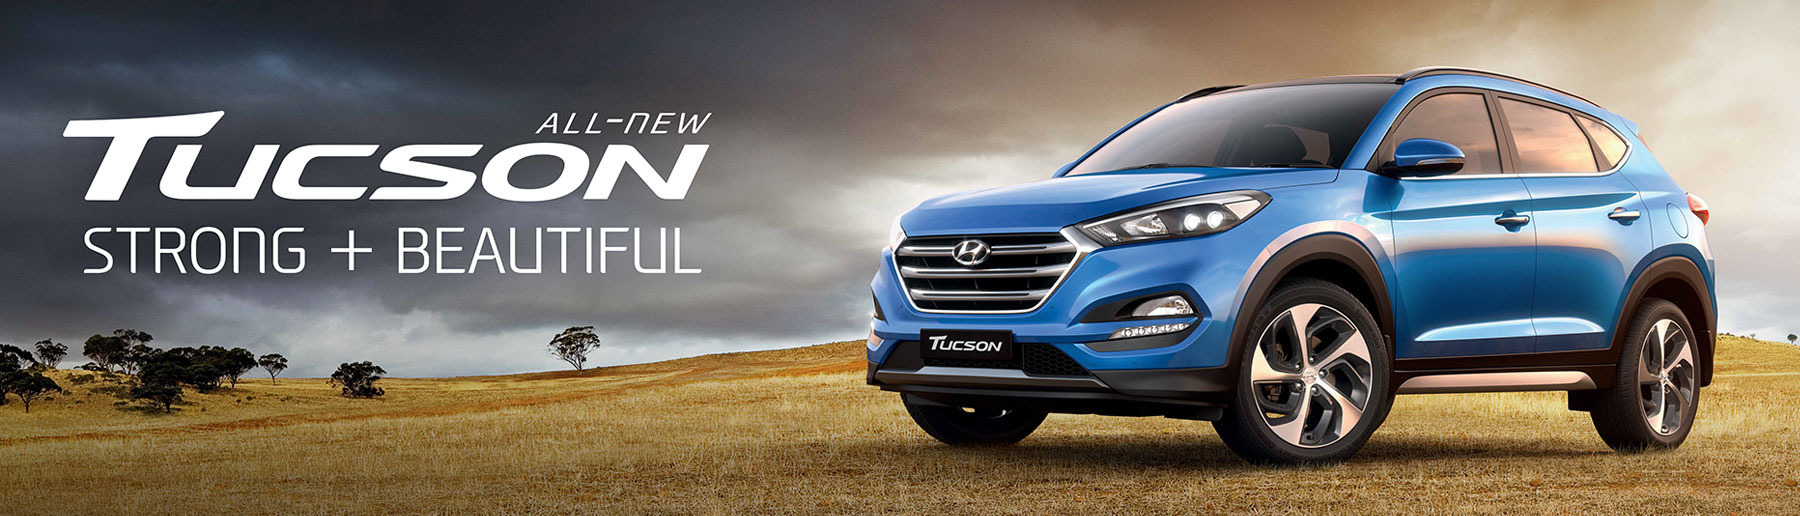 All New Hyundai Tucson - Strong + Beautiful